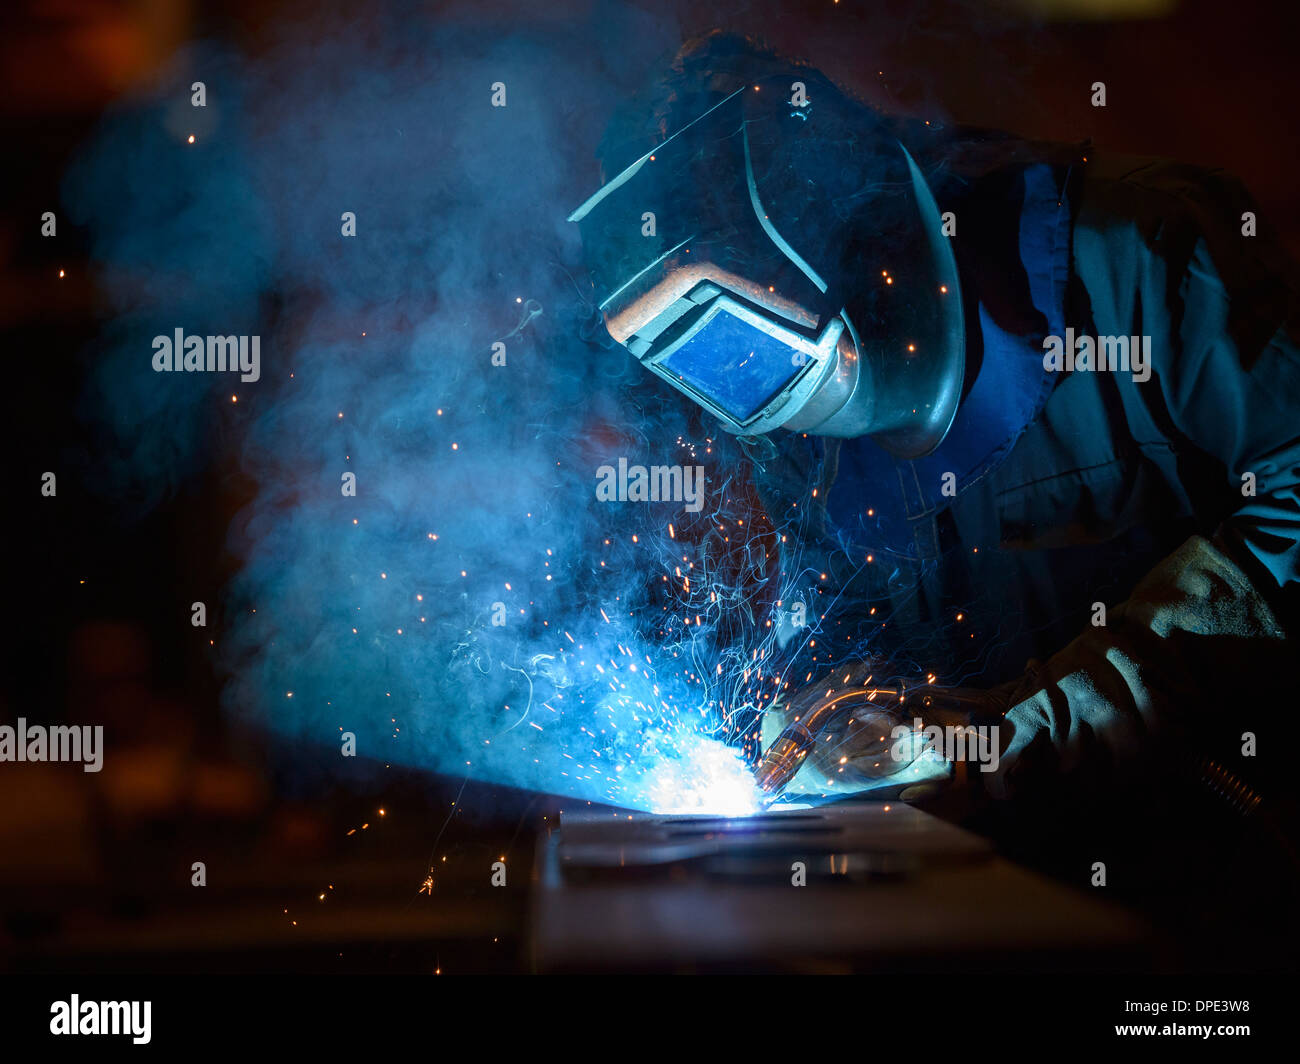 Welder using oxyacetylene torch in factory - Stock Image